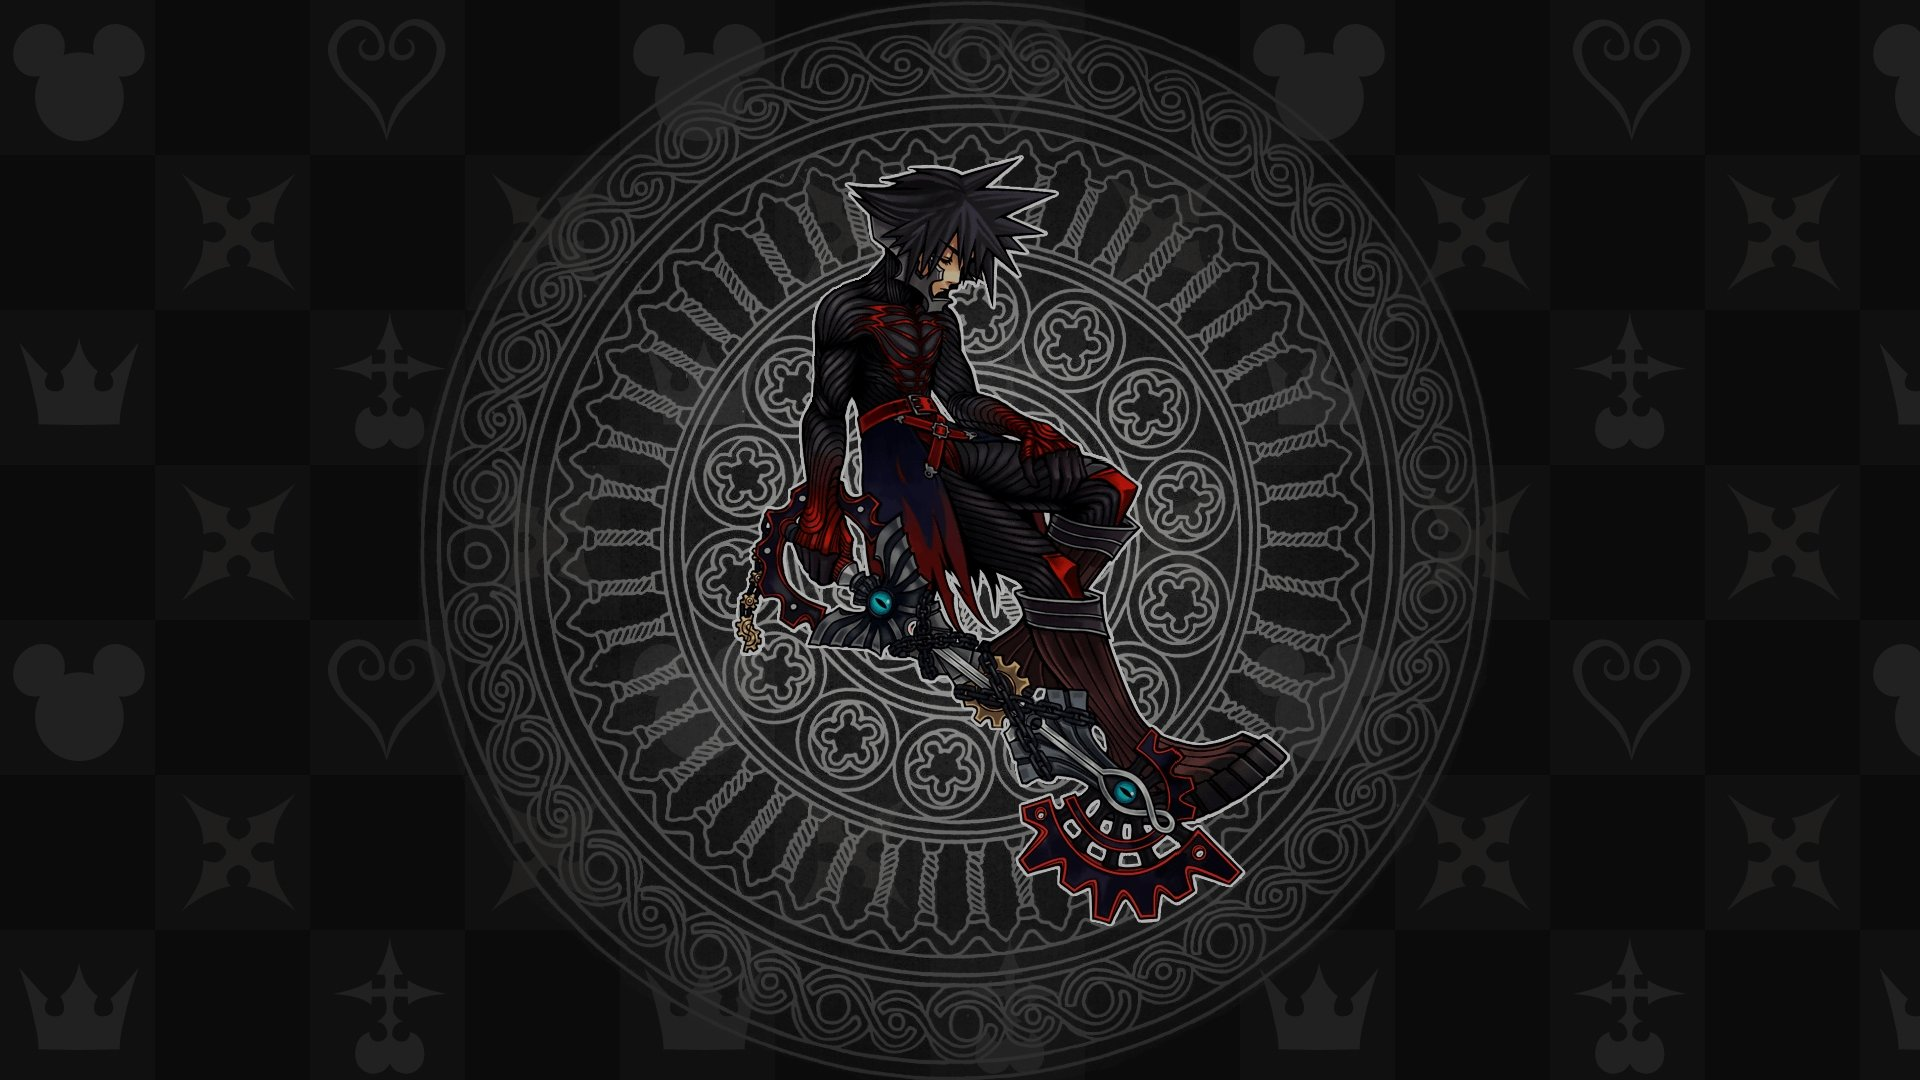 Best Kingdom Hearts Wallpaper Id110031 For High Resolution Hd 1080p Pc